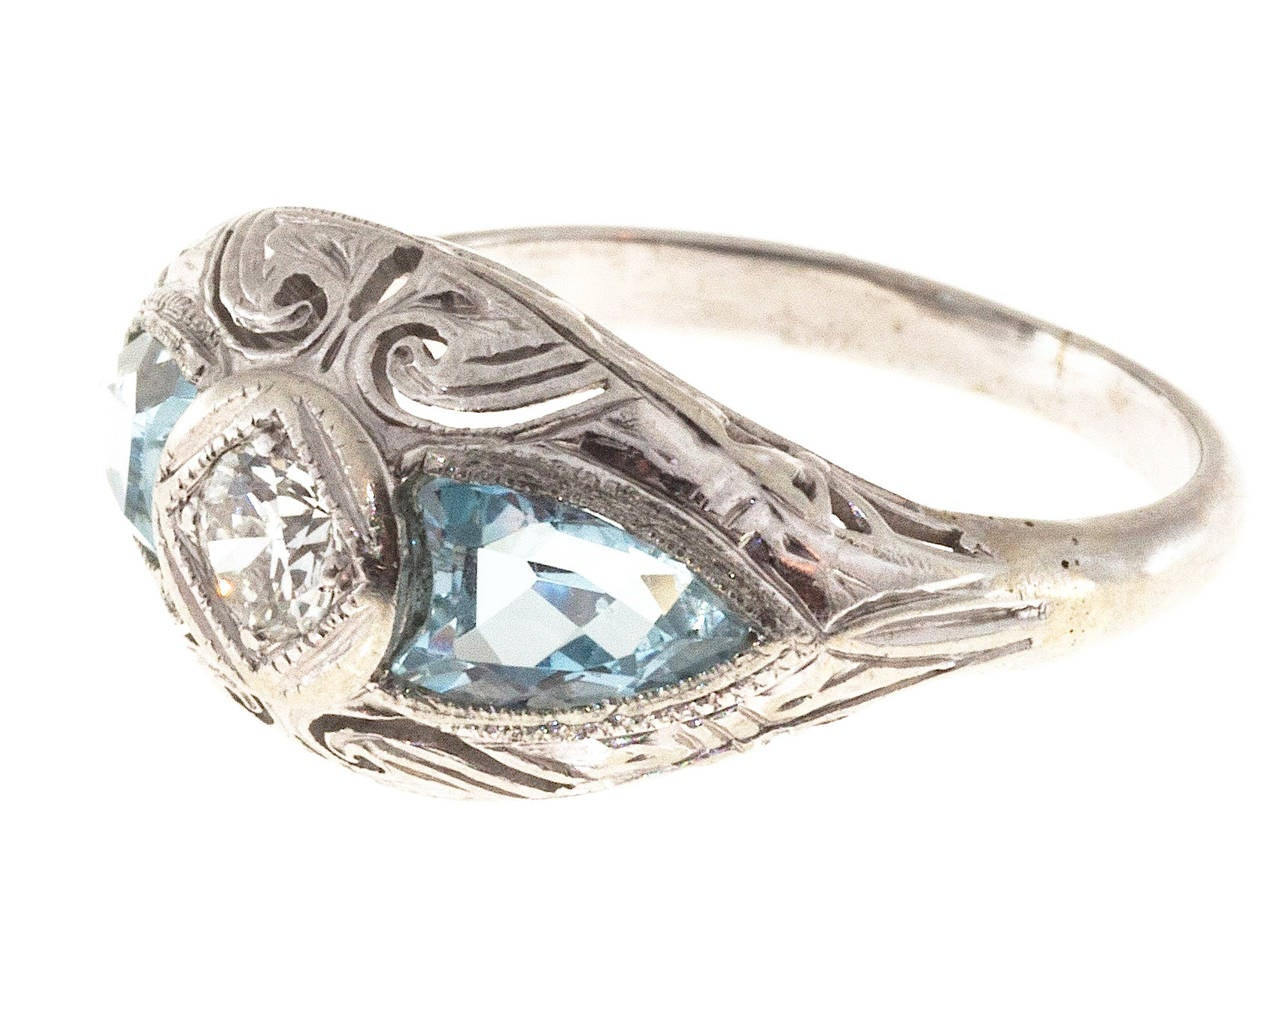 Rare Art Deco 14k white gold pierced ring with shield cut genuine Aqua side stones and a nice center diamond. Shank replaced long ago.